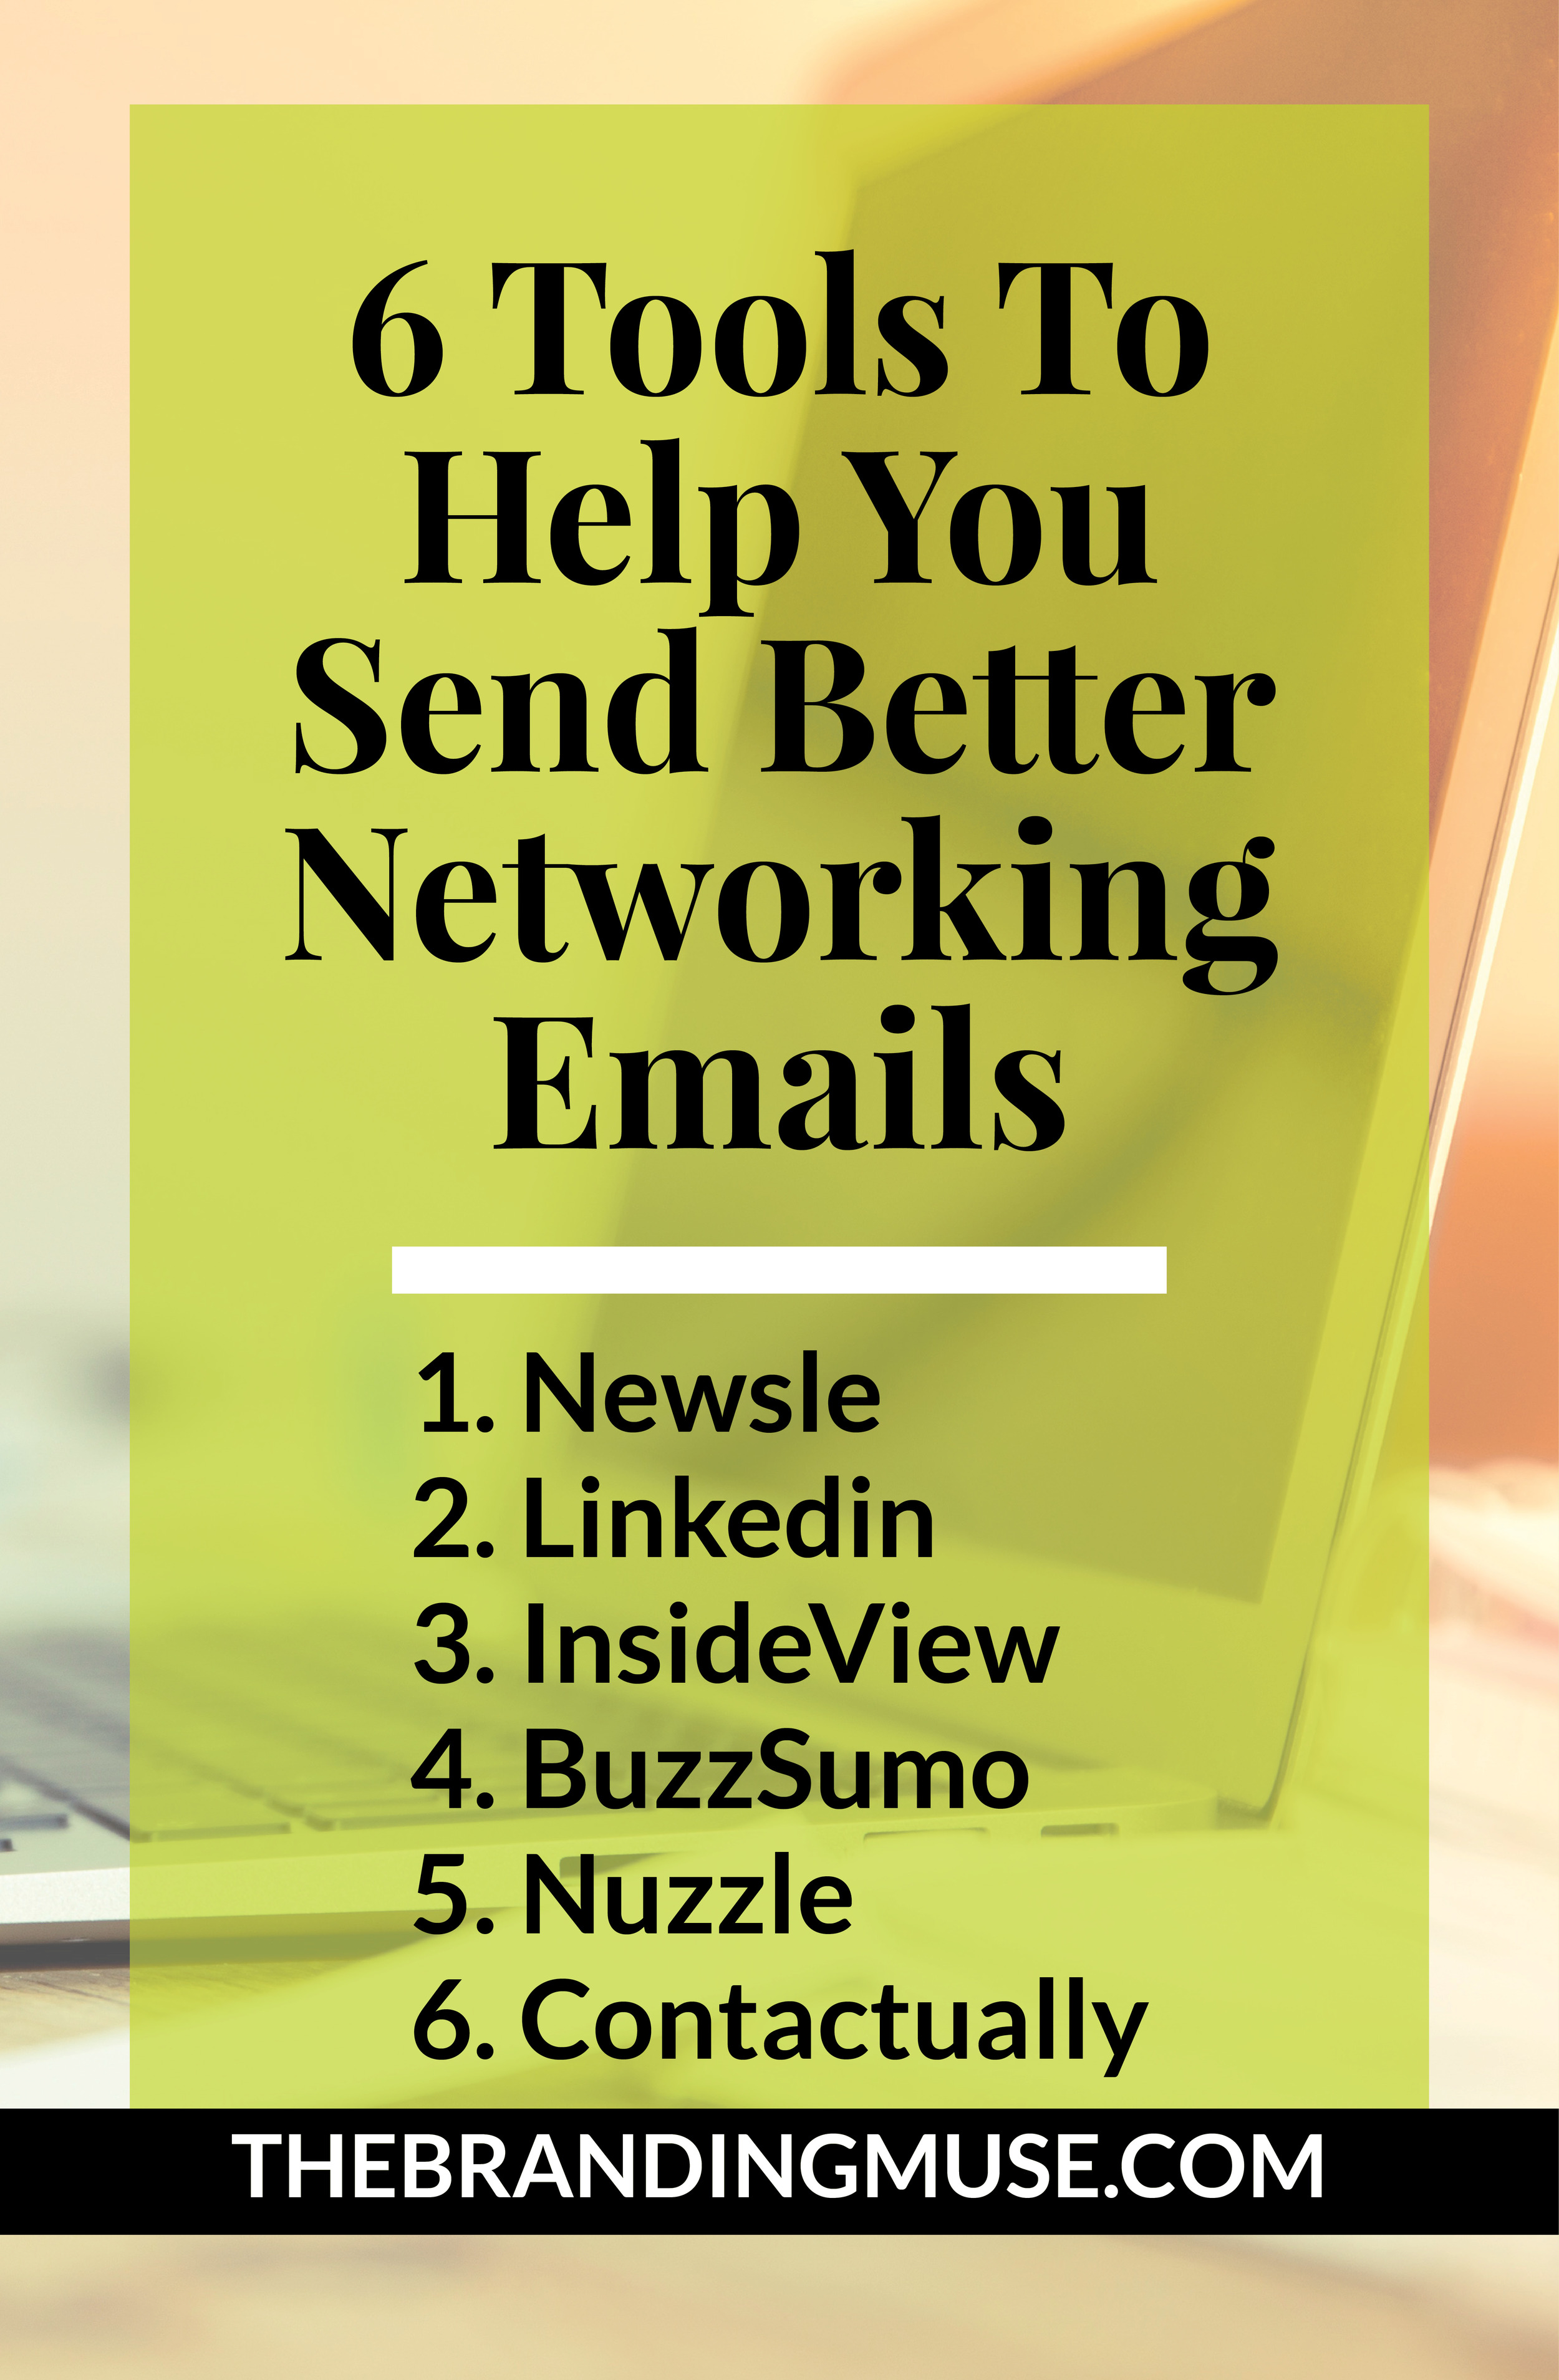 Use these tools to send better networking emails when you are job searching or even in sales. From job interview followup emails to following up after an event, these tools can help you master connections and networking.